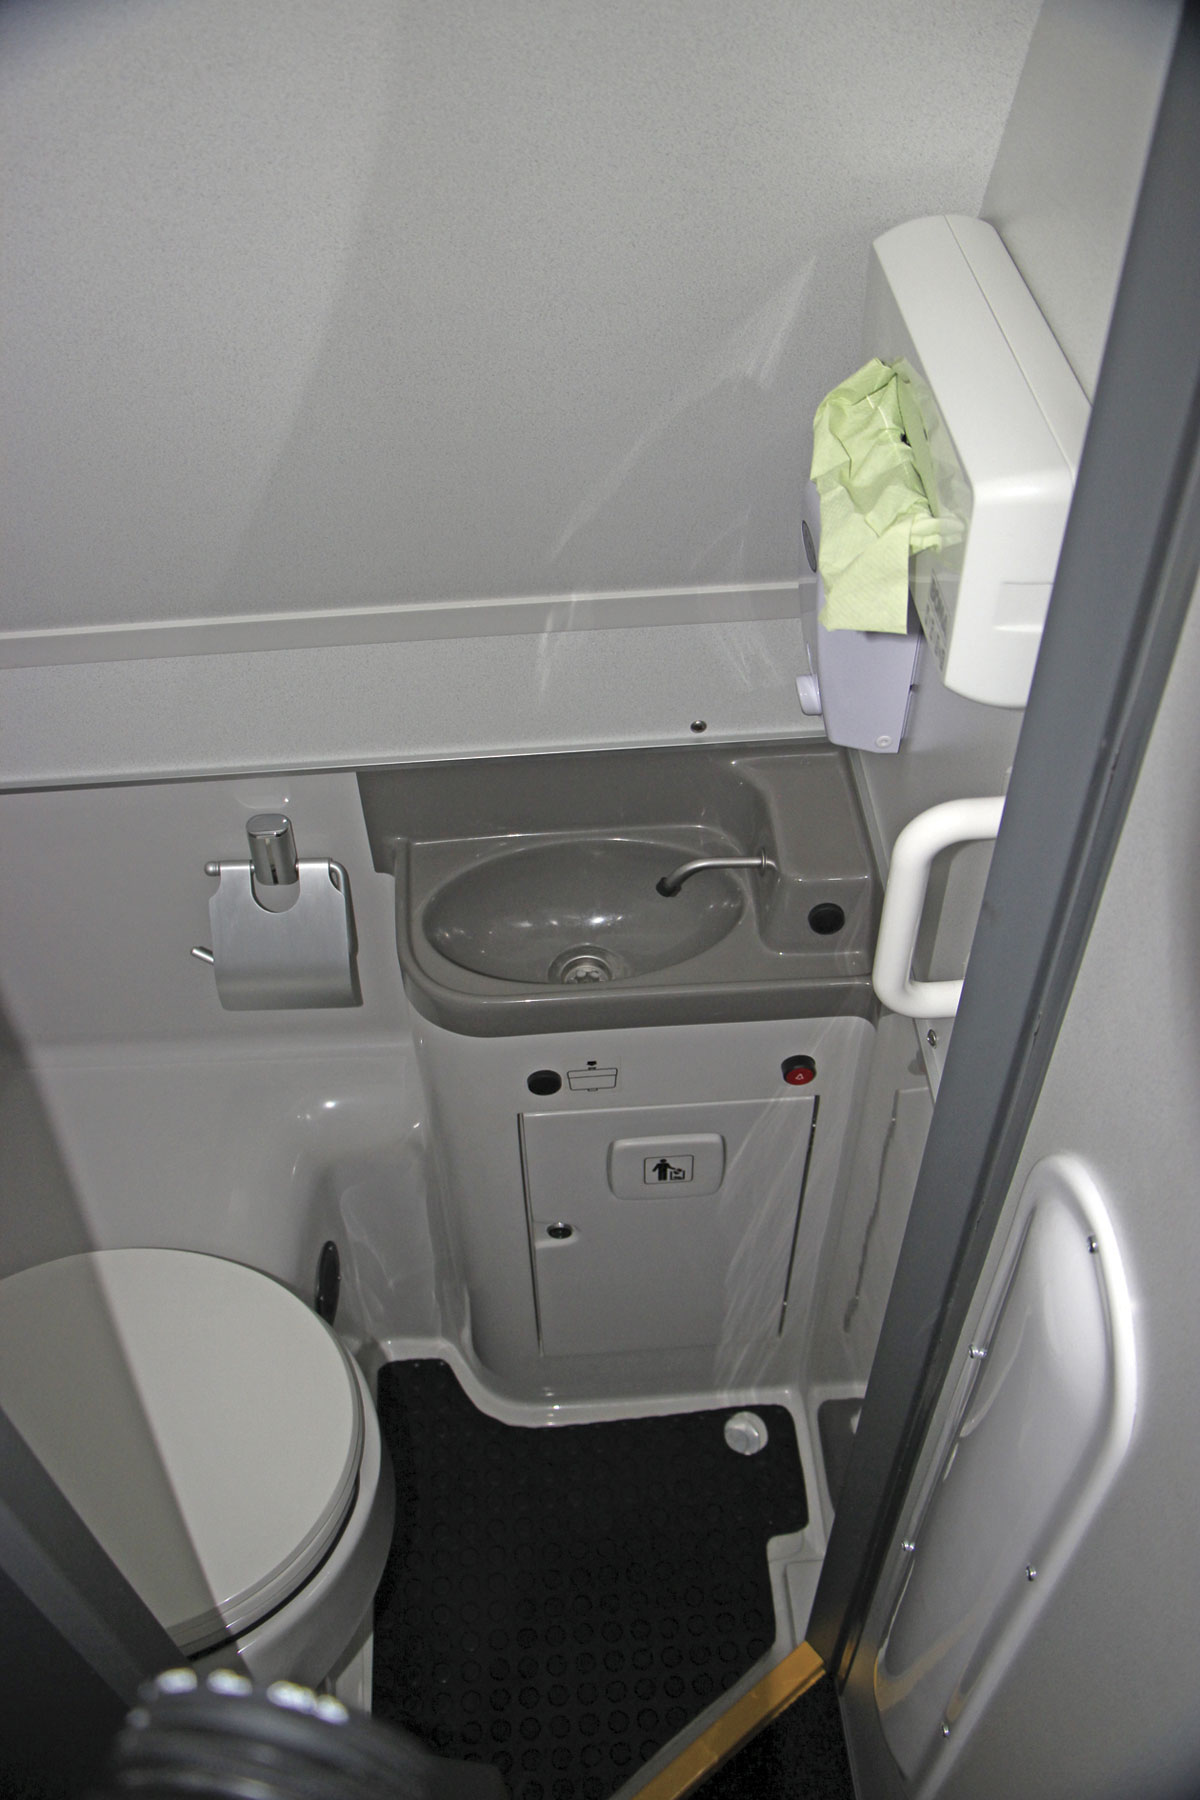 The toilet compartment has the seat mounted facing the offside rather than the rear, a layout also used in the TX